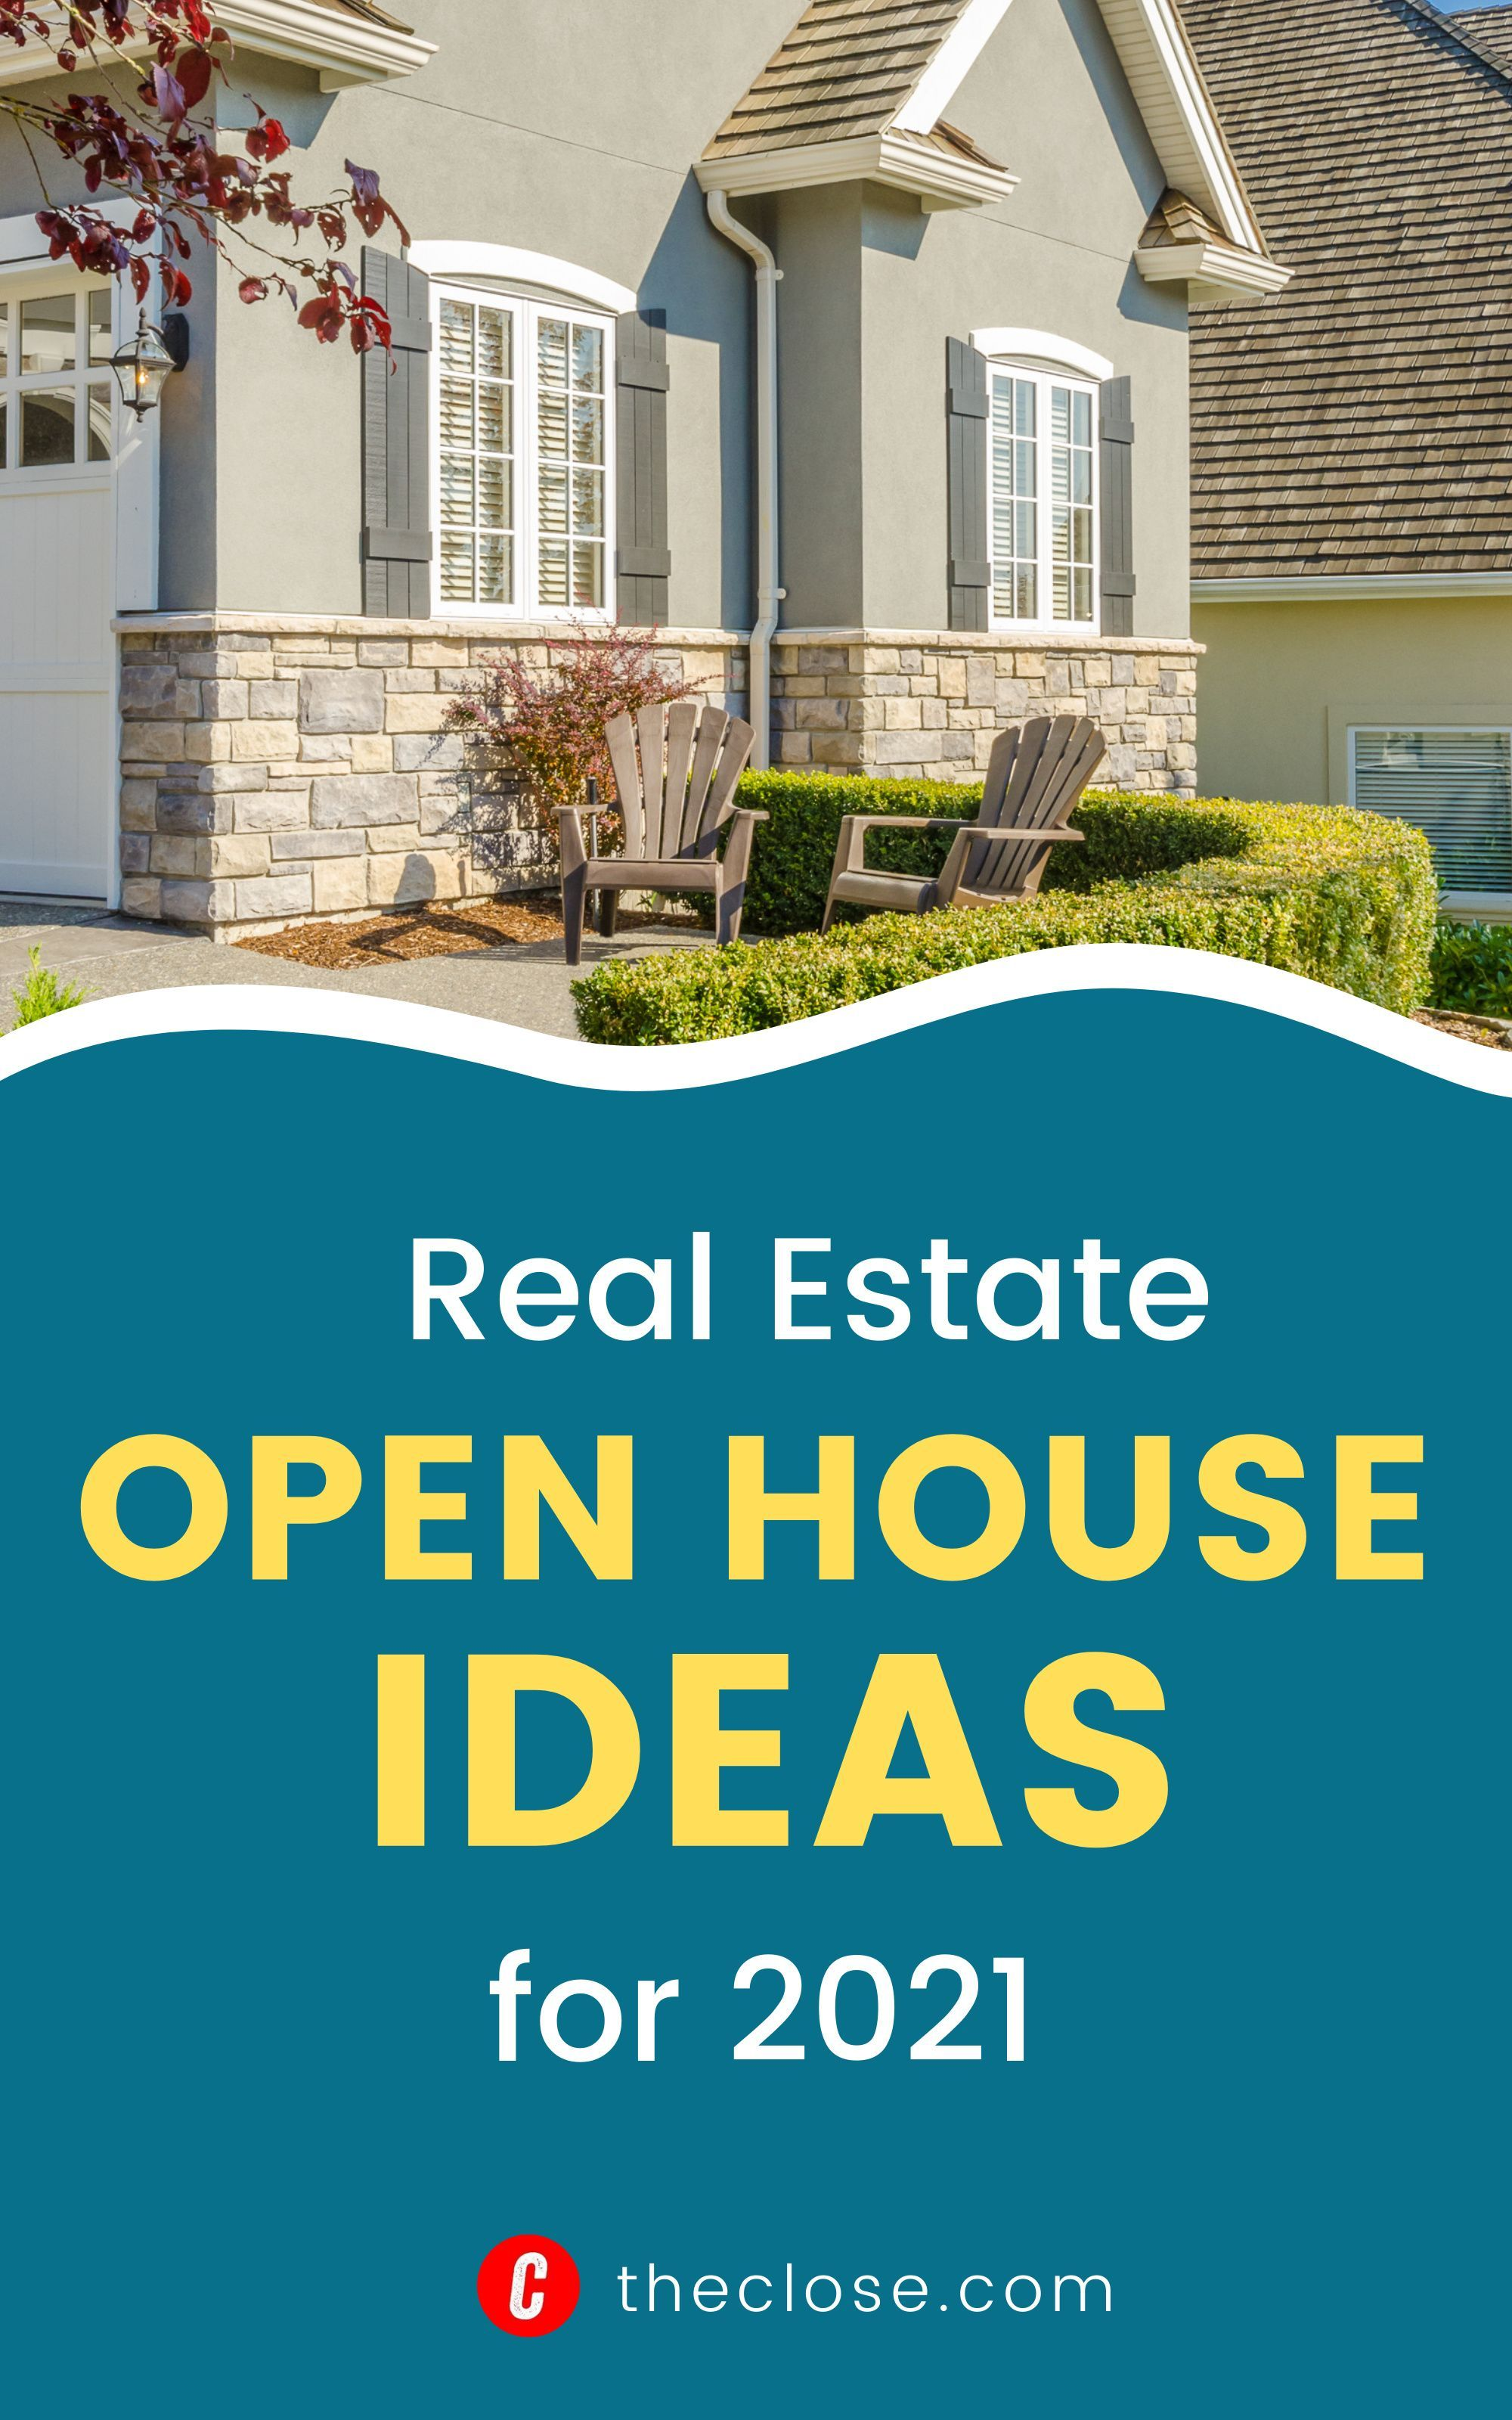 Check out 21 best real estate open house ideas for 2021 that will get you more leads. #openhouseideas #SellingRealEstate #marketingideas #leadgeneration #RealEstateMarketing #openhousemarketing #RealEstateLeads #realestateagents #RealEstateBusiness #theclose